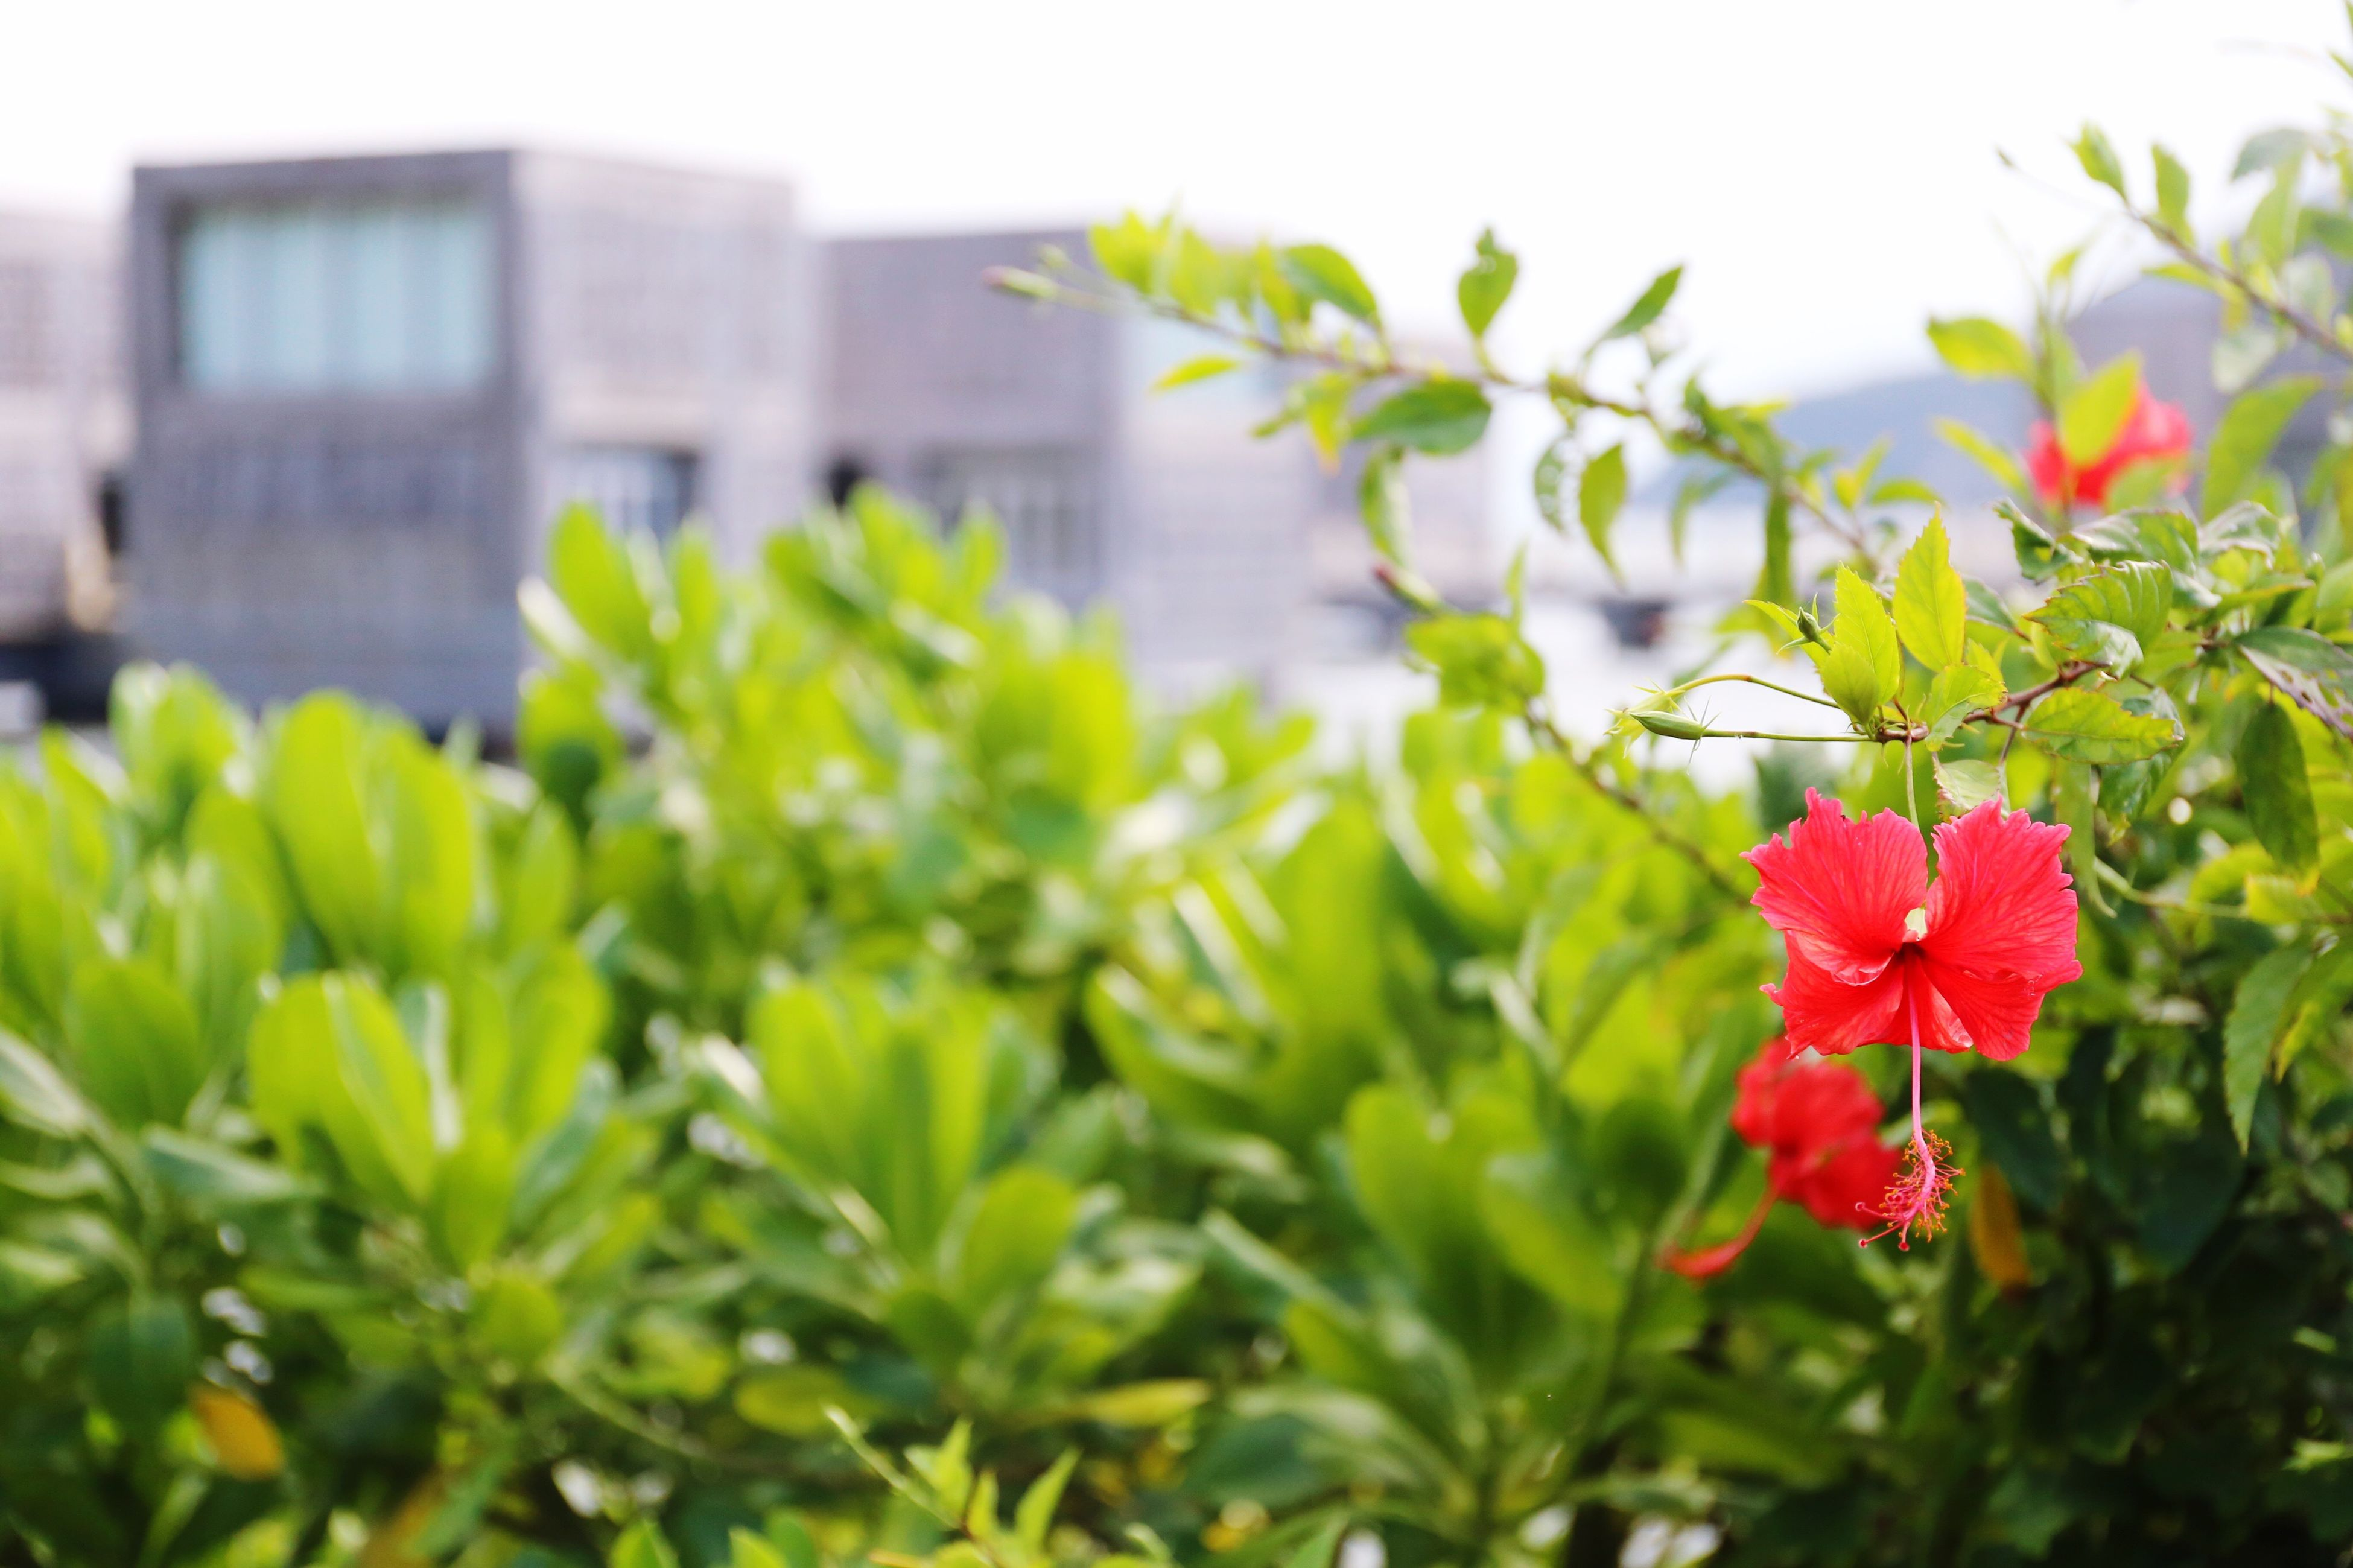 flower, growth, freshness, plant, fragility, leaf, focus on foreground, building exterior, red, built structure, petal, nature, blooming, beauty in nature, close-up, architecture, stem, flower head, pink color, green color